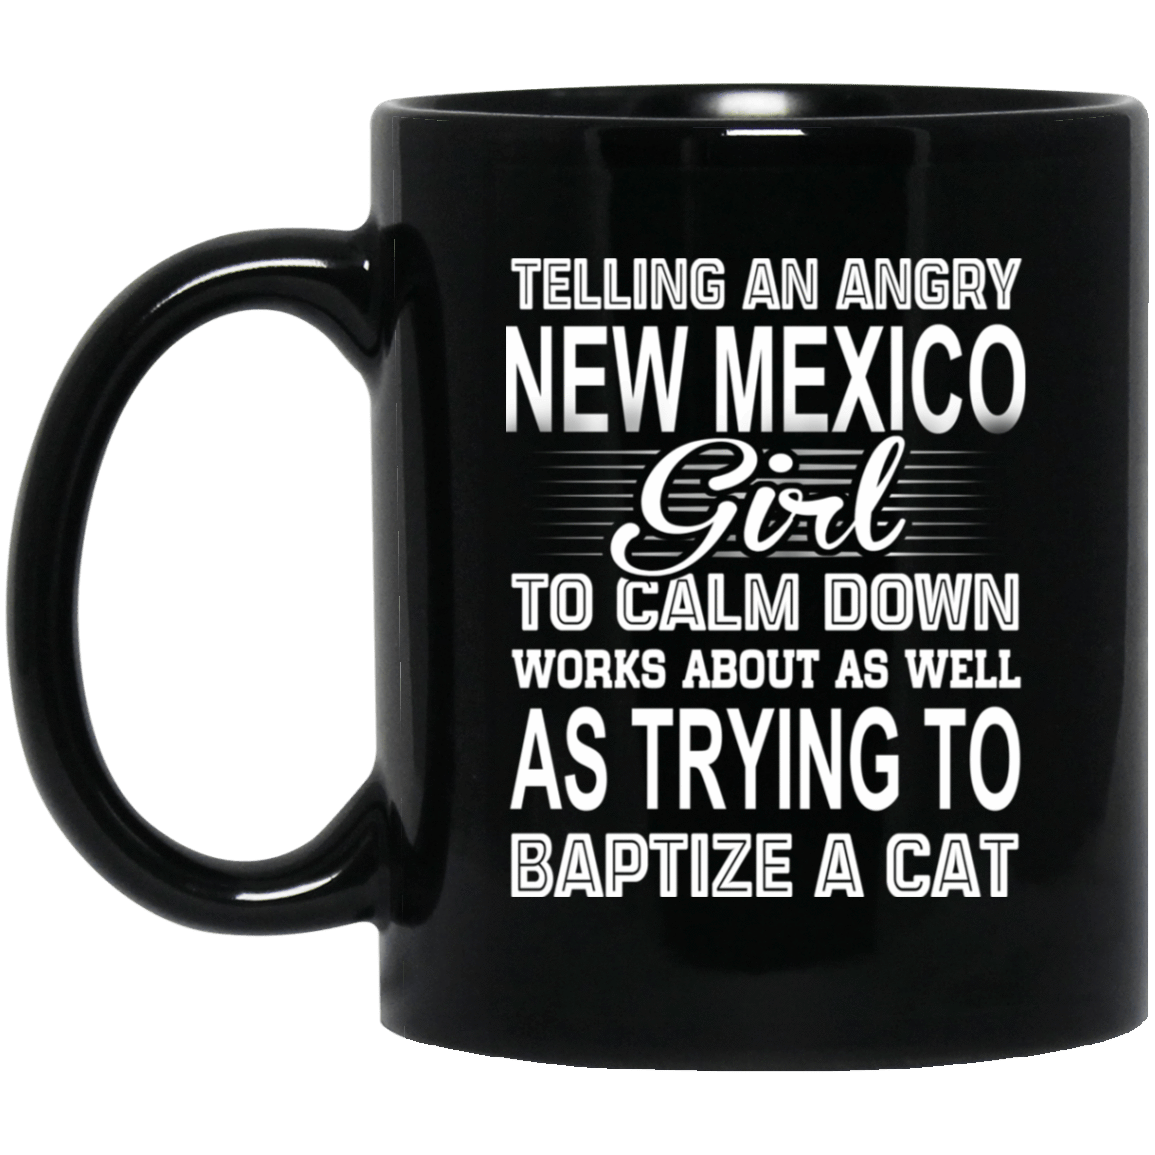 Telling An Angry New Mexico Girl To Calm Down Works About As Well As Trying To Baptize A Cat Mug 1065-10181-76151617-49307 - Tee Ript